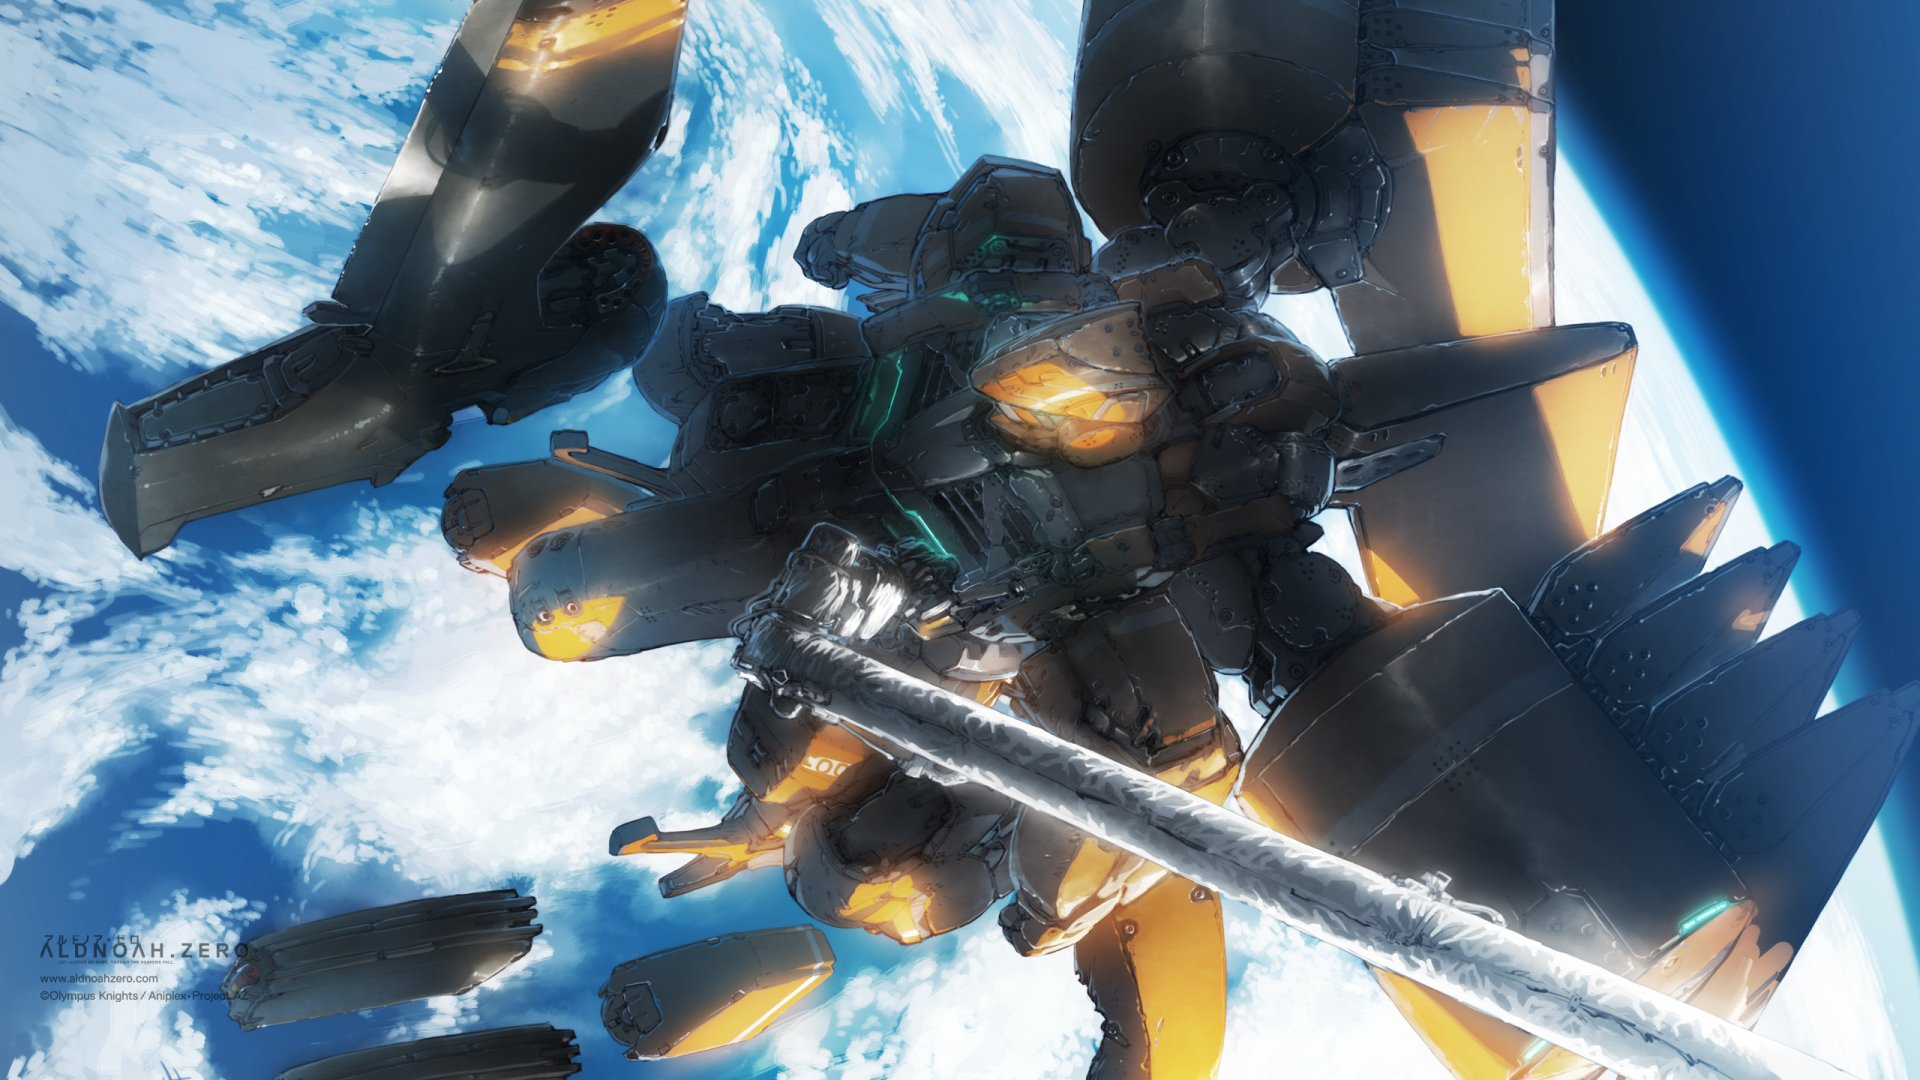 Anime - Aldnoah.Zero  Mecha Wallpaper